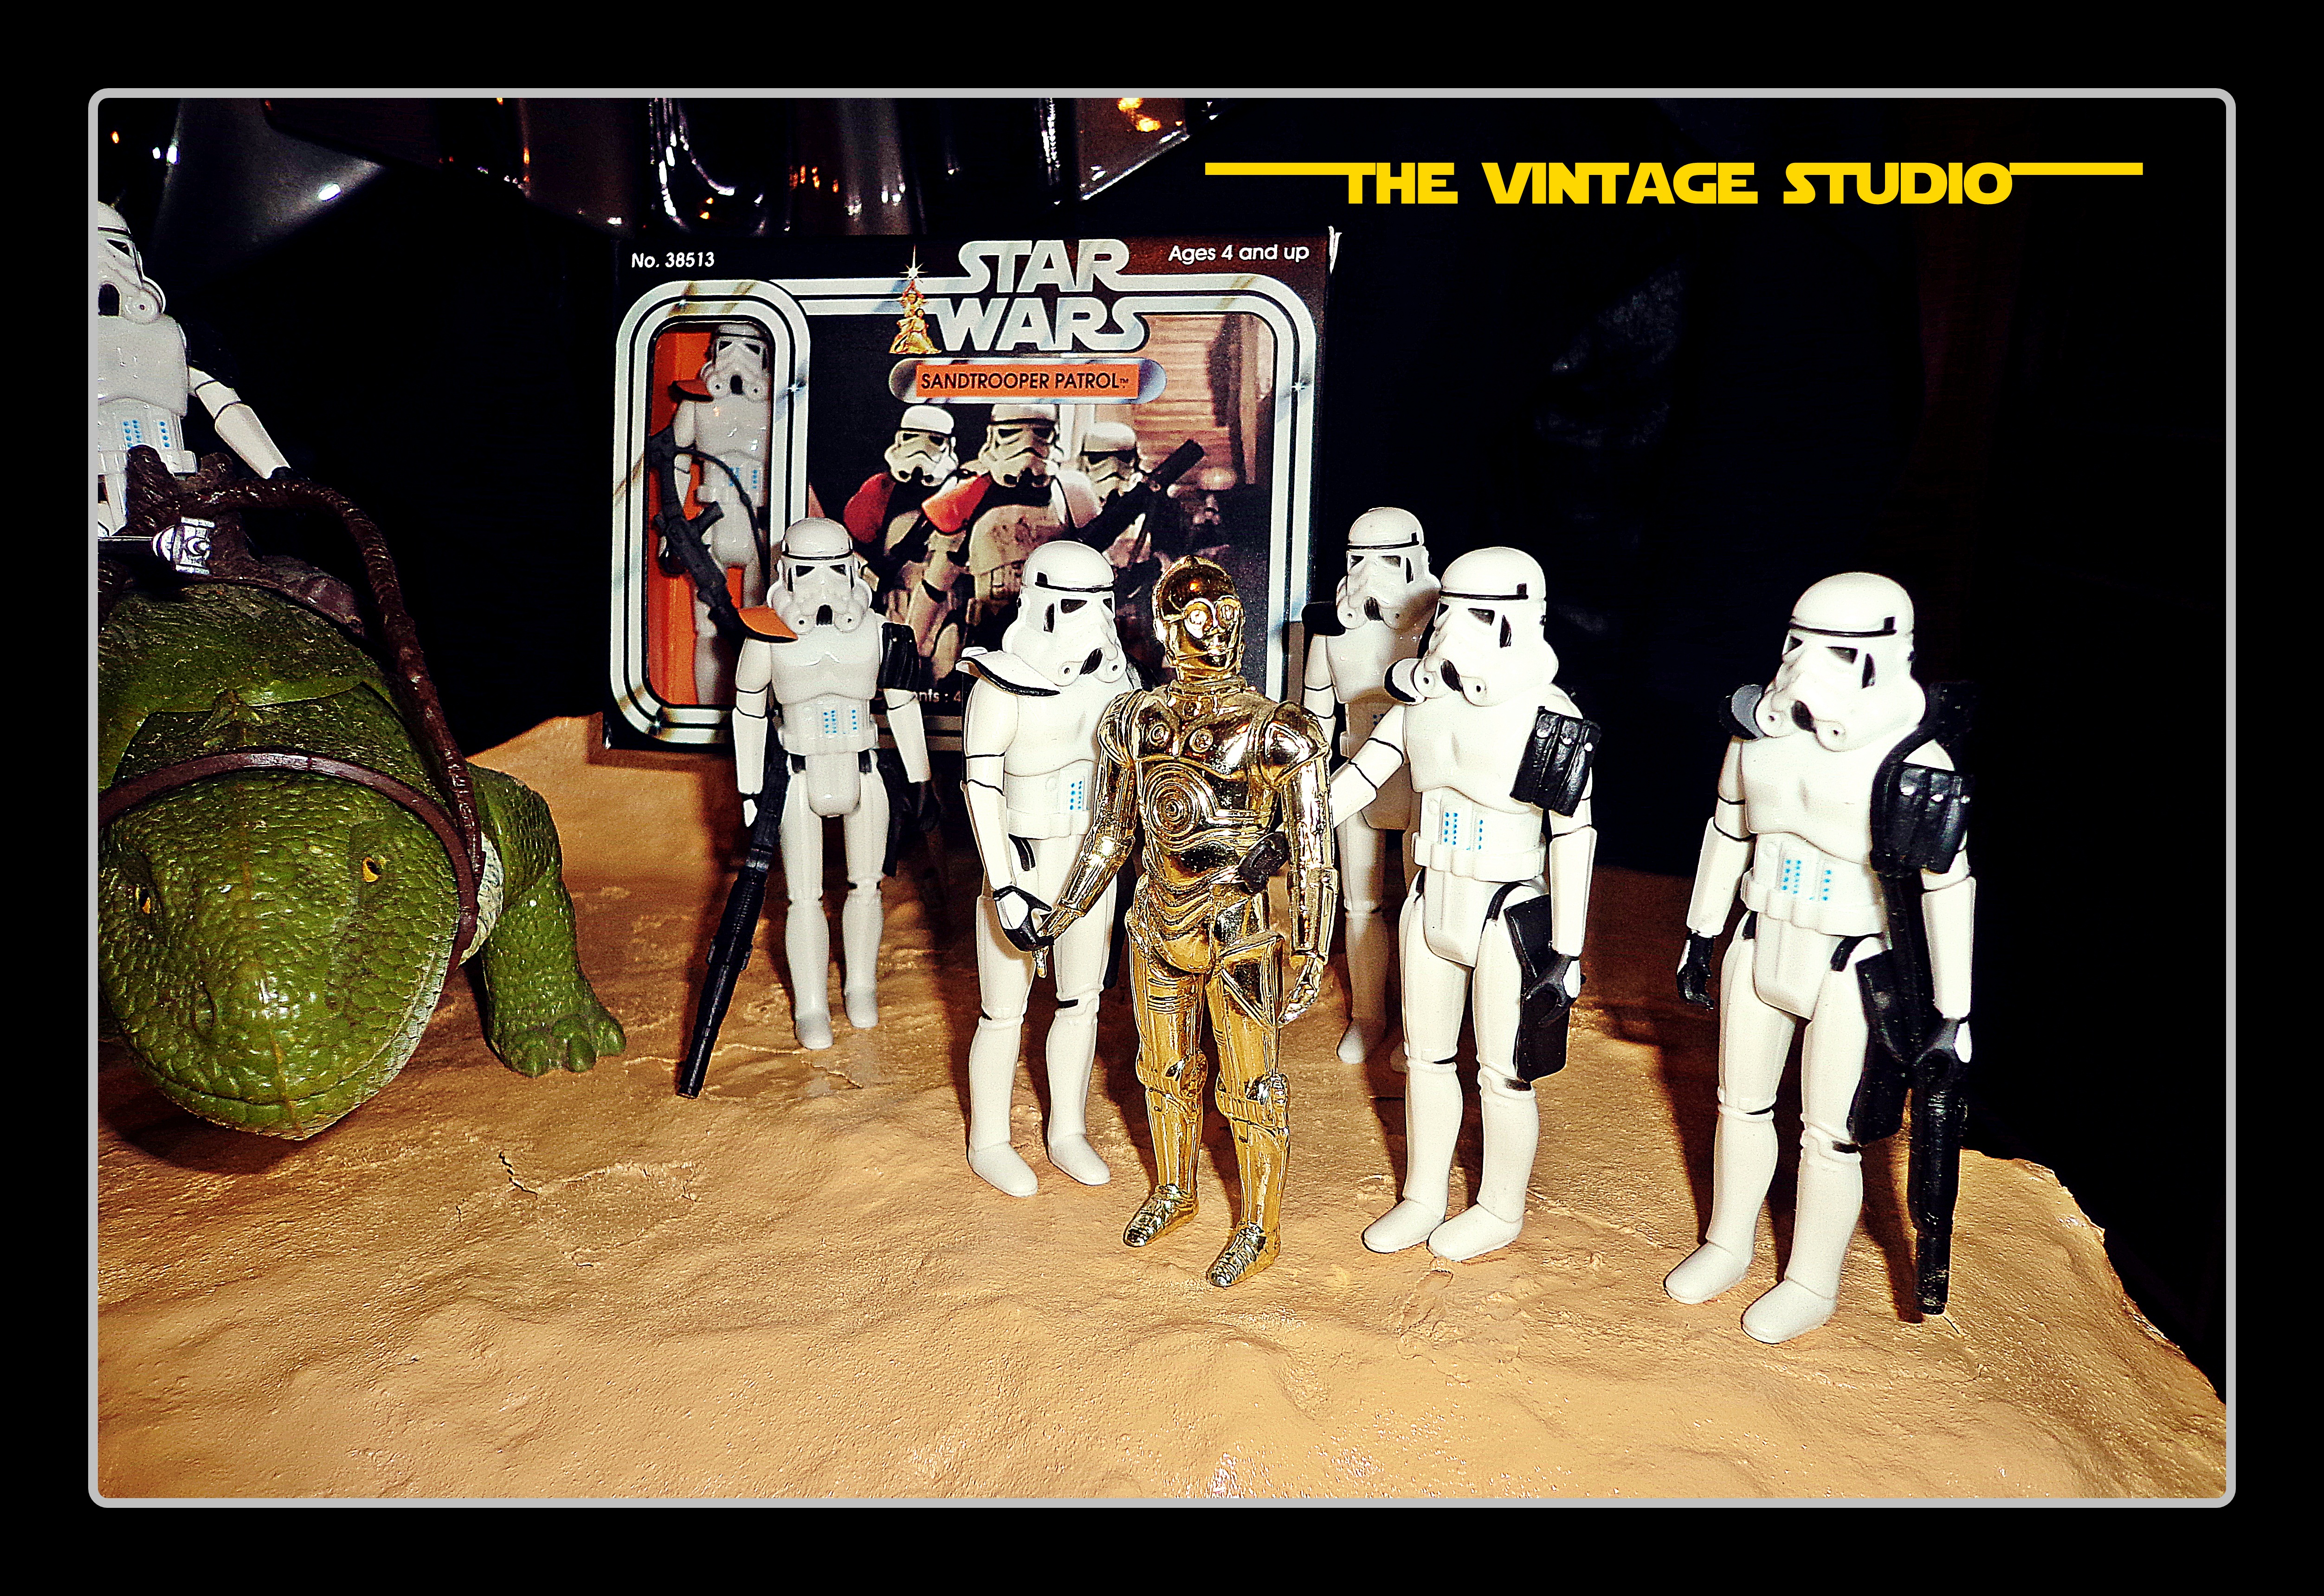 IF KENNER WOULD HAVE GIVEN THEM THE CHANCE, THEY WOULD HAVE FOUND THOSE DROIDS (3)